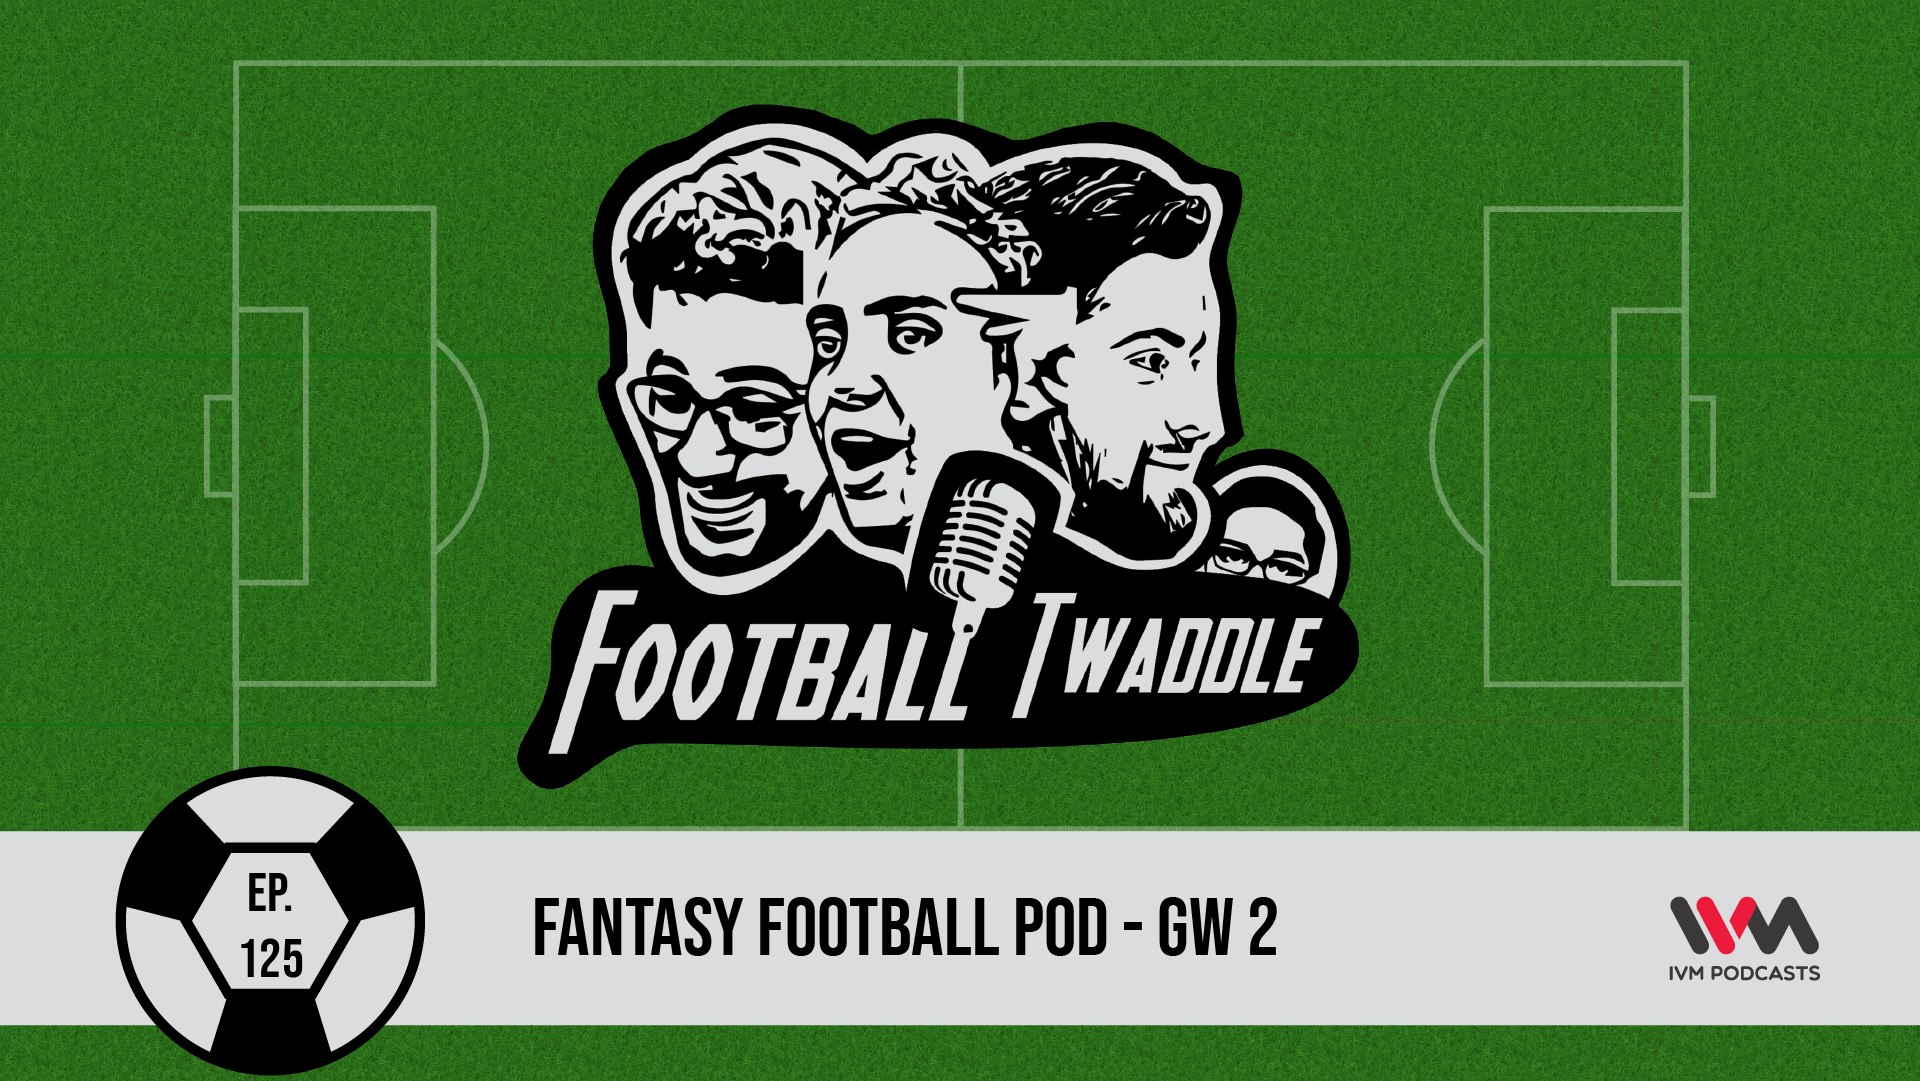 FootballTwaddleEpisode125.png